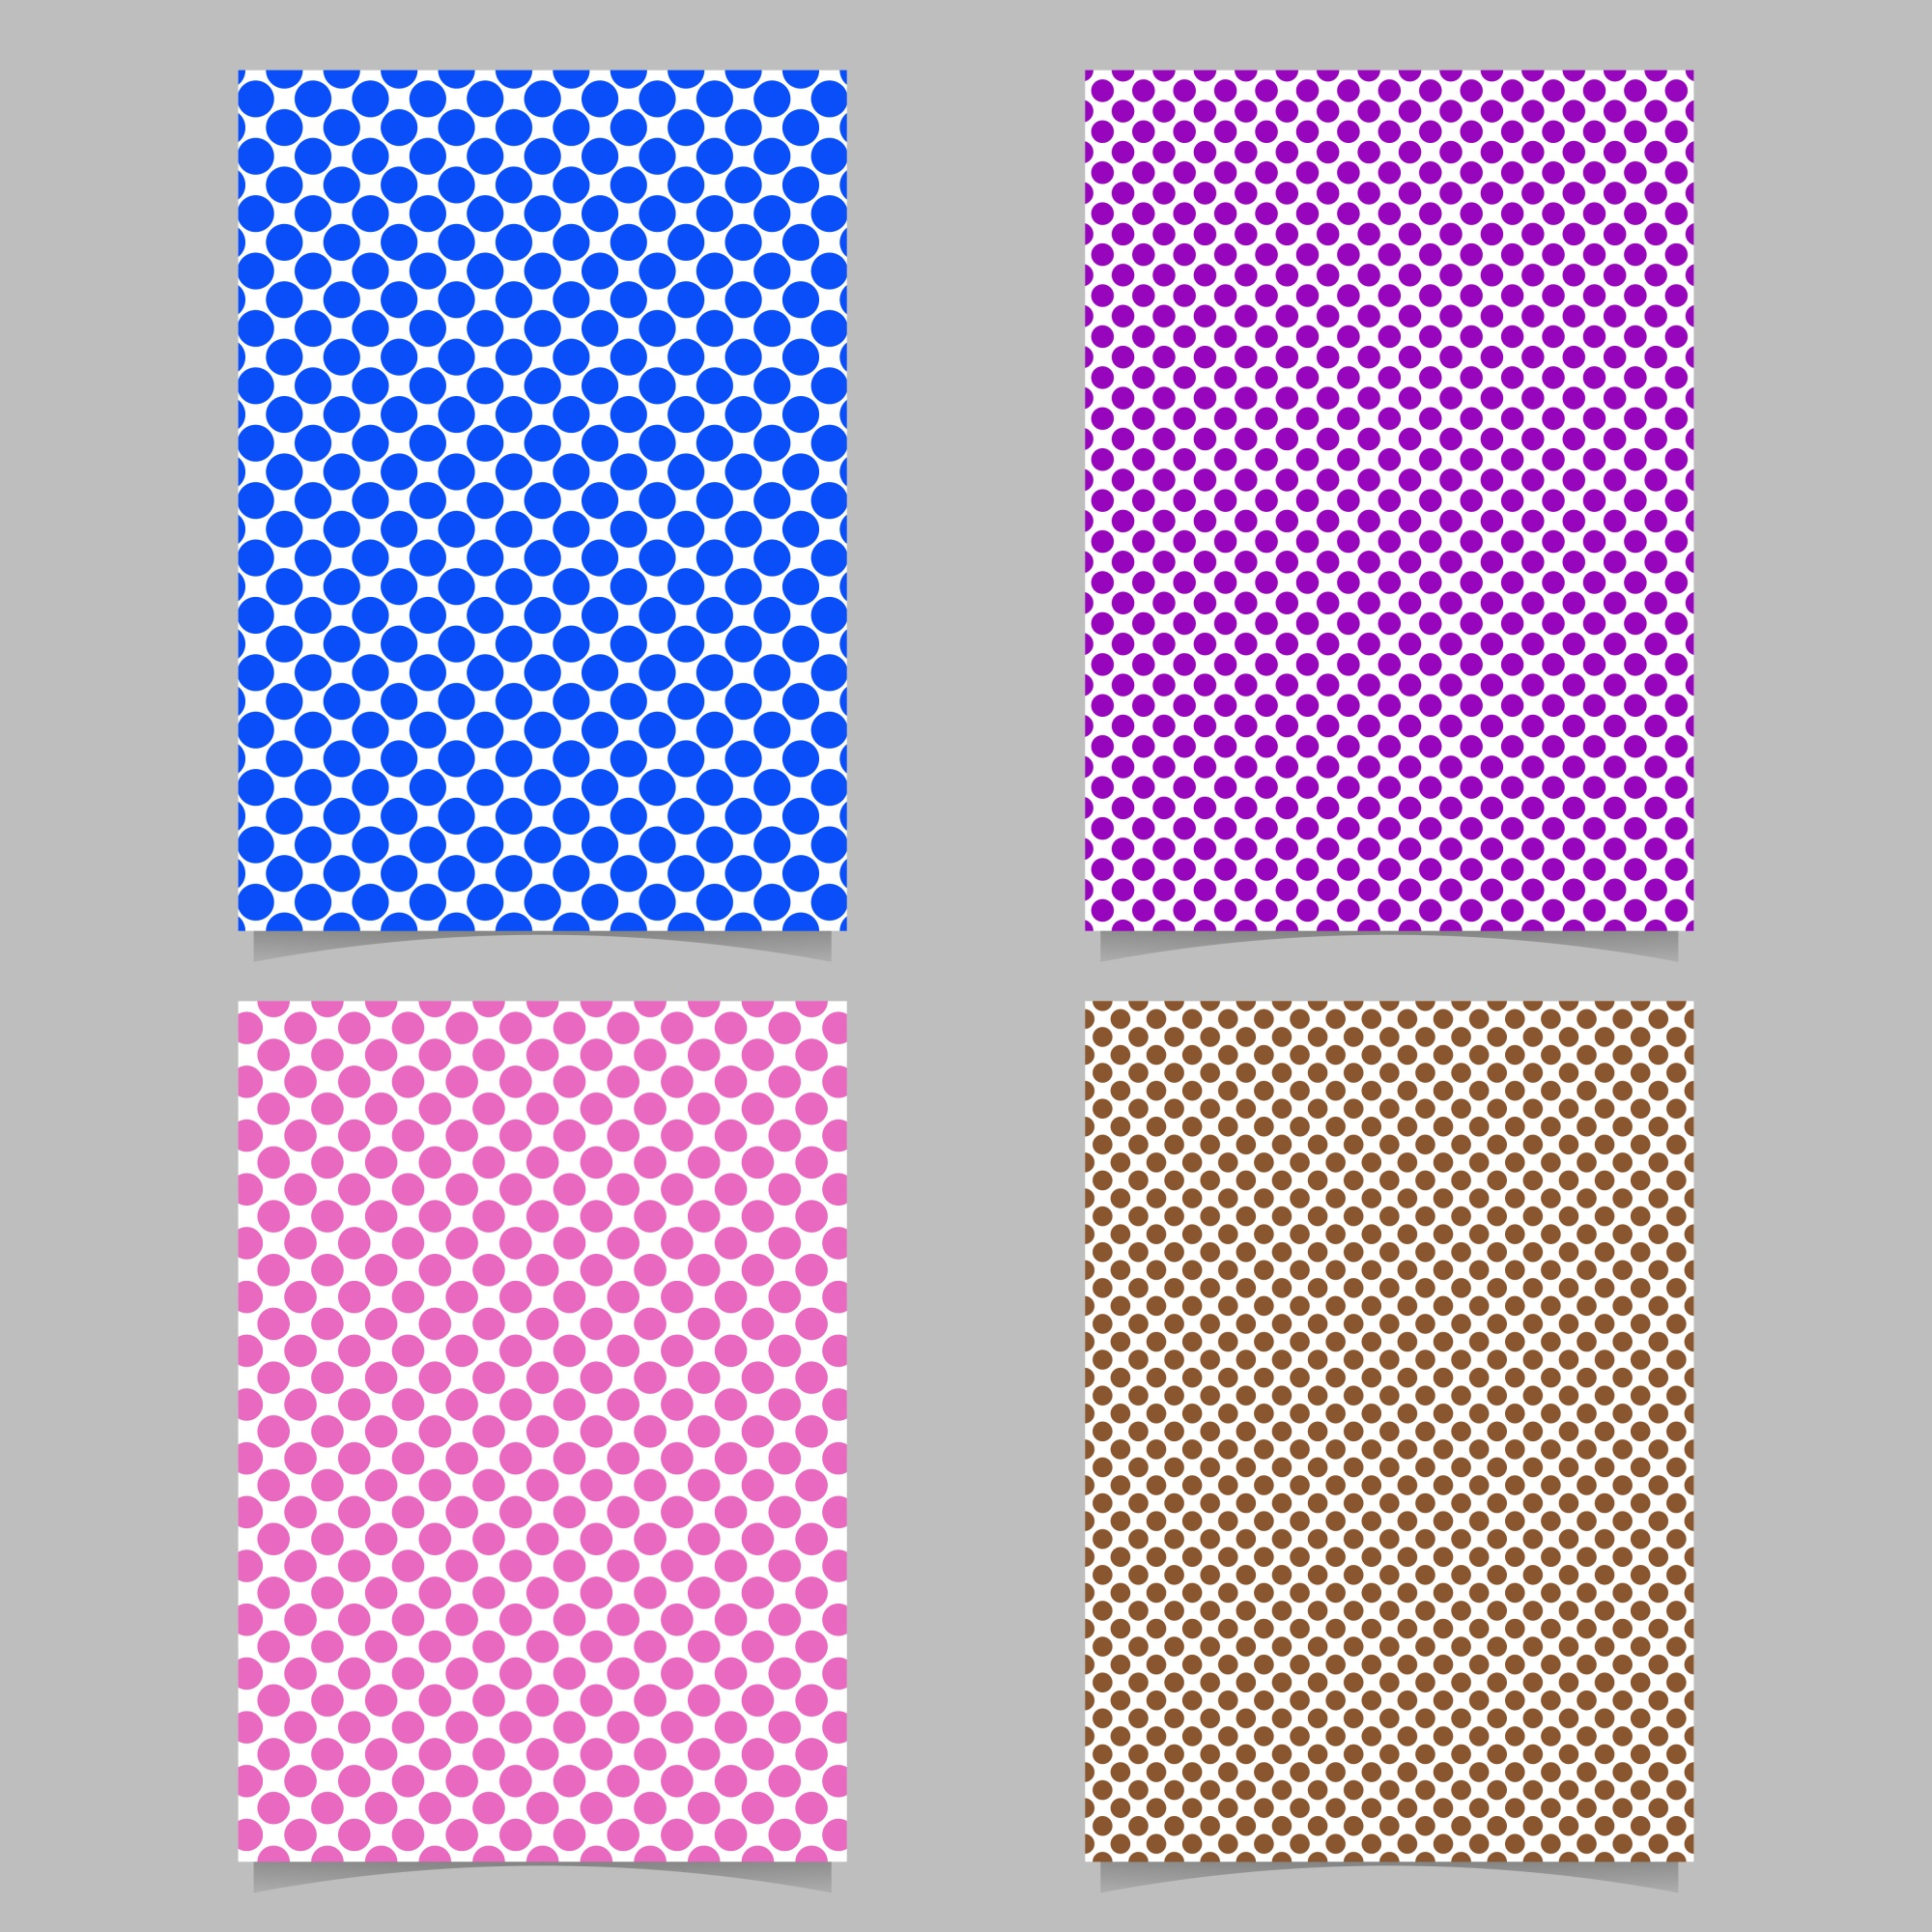 Retro polka dot card background template set - vector stationery background design with circle pattern